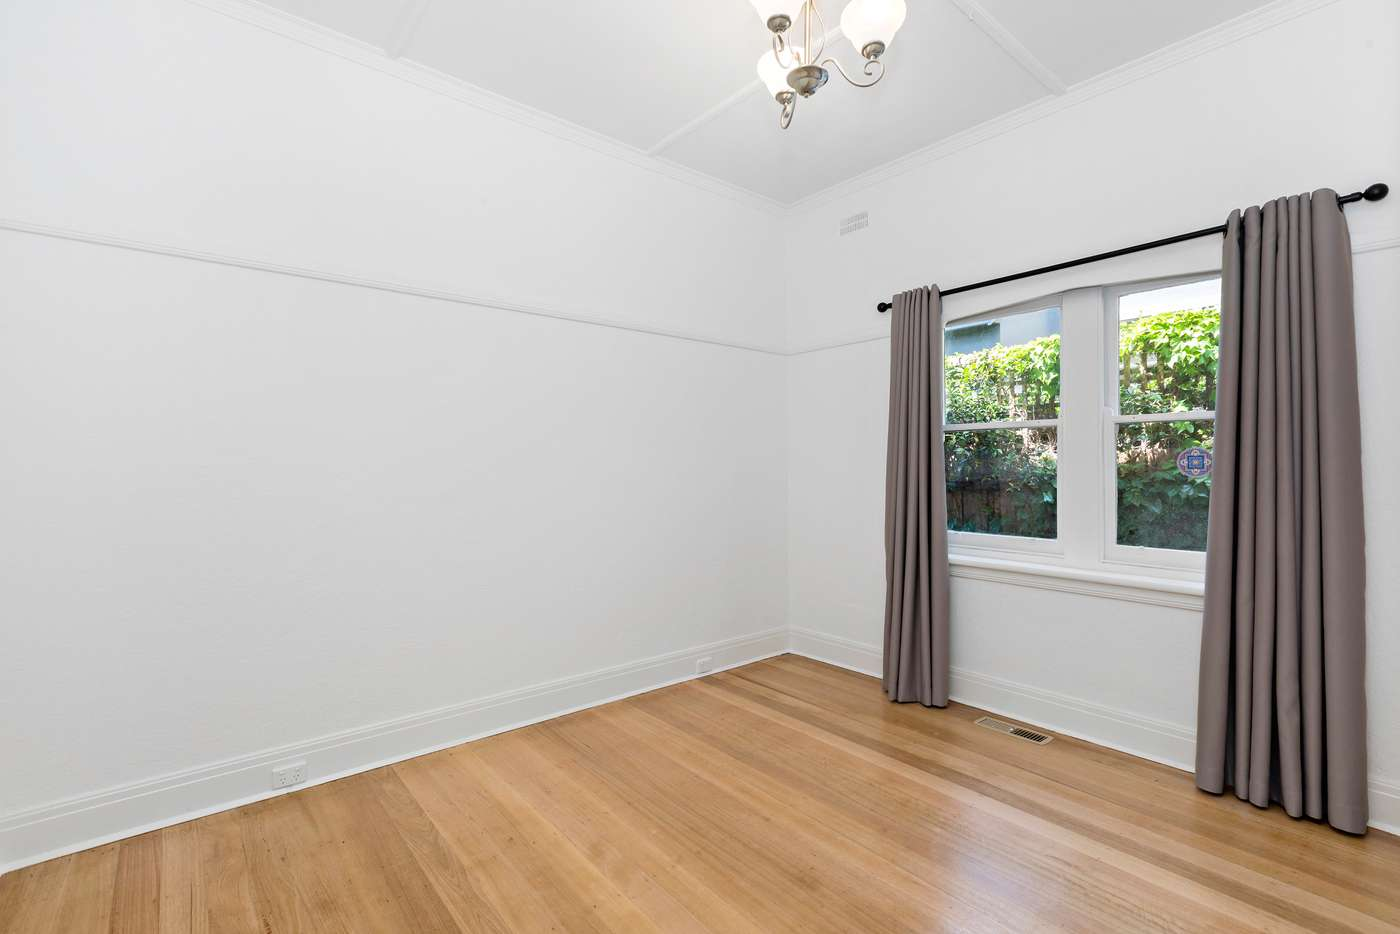 Fifth view of Homely house listing, 3 Hall Street, Brighton VIC 3186